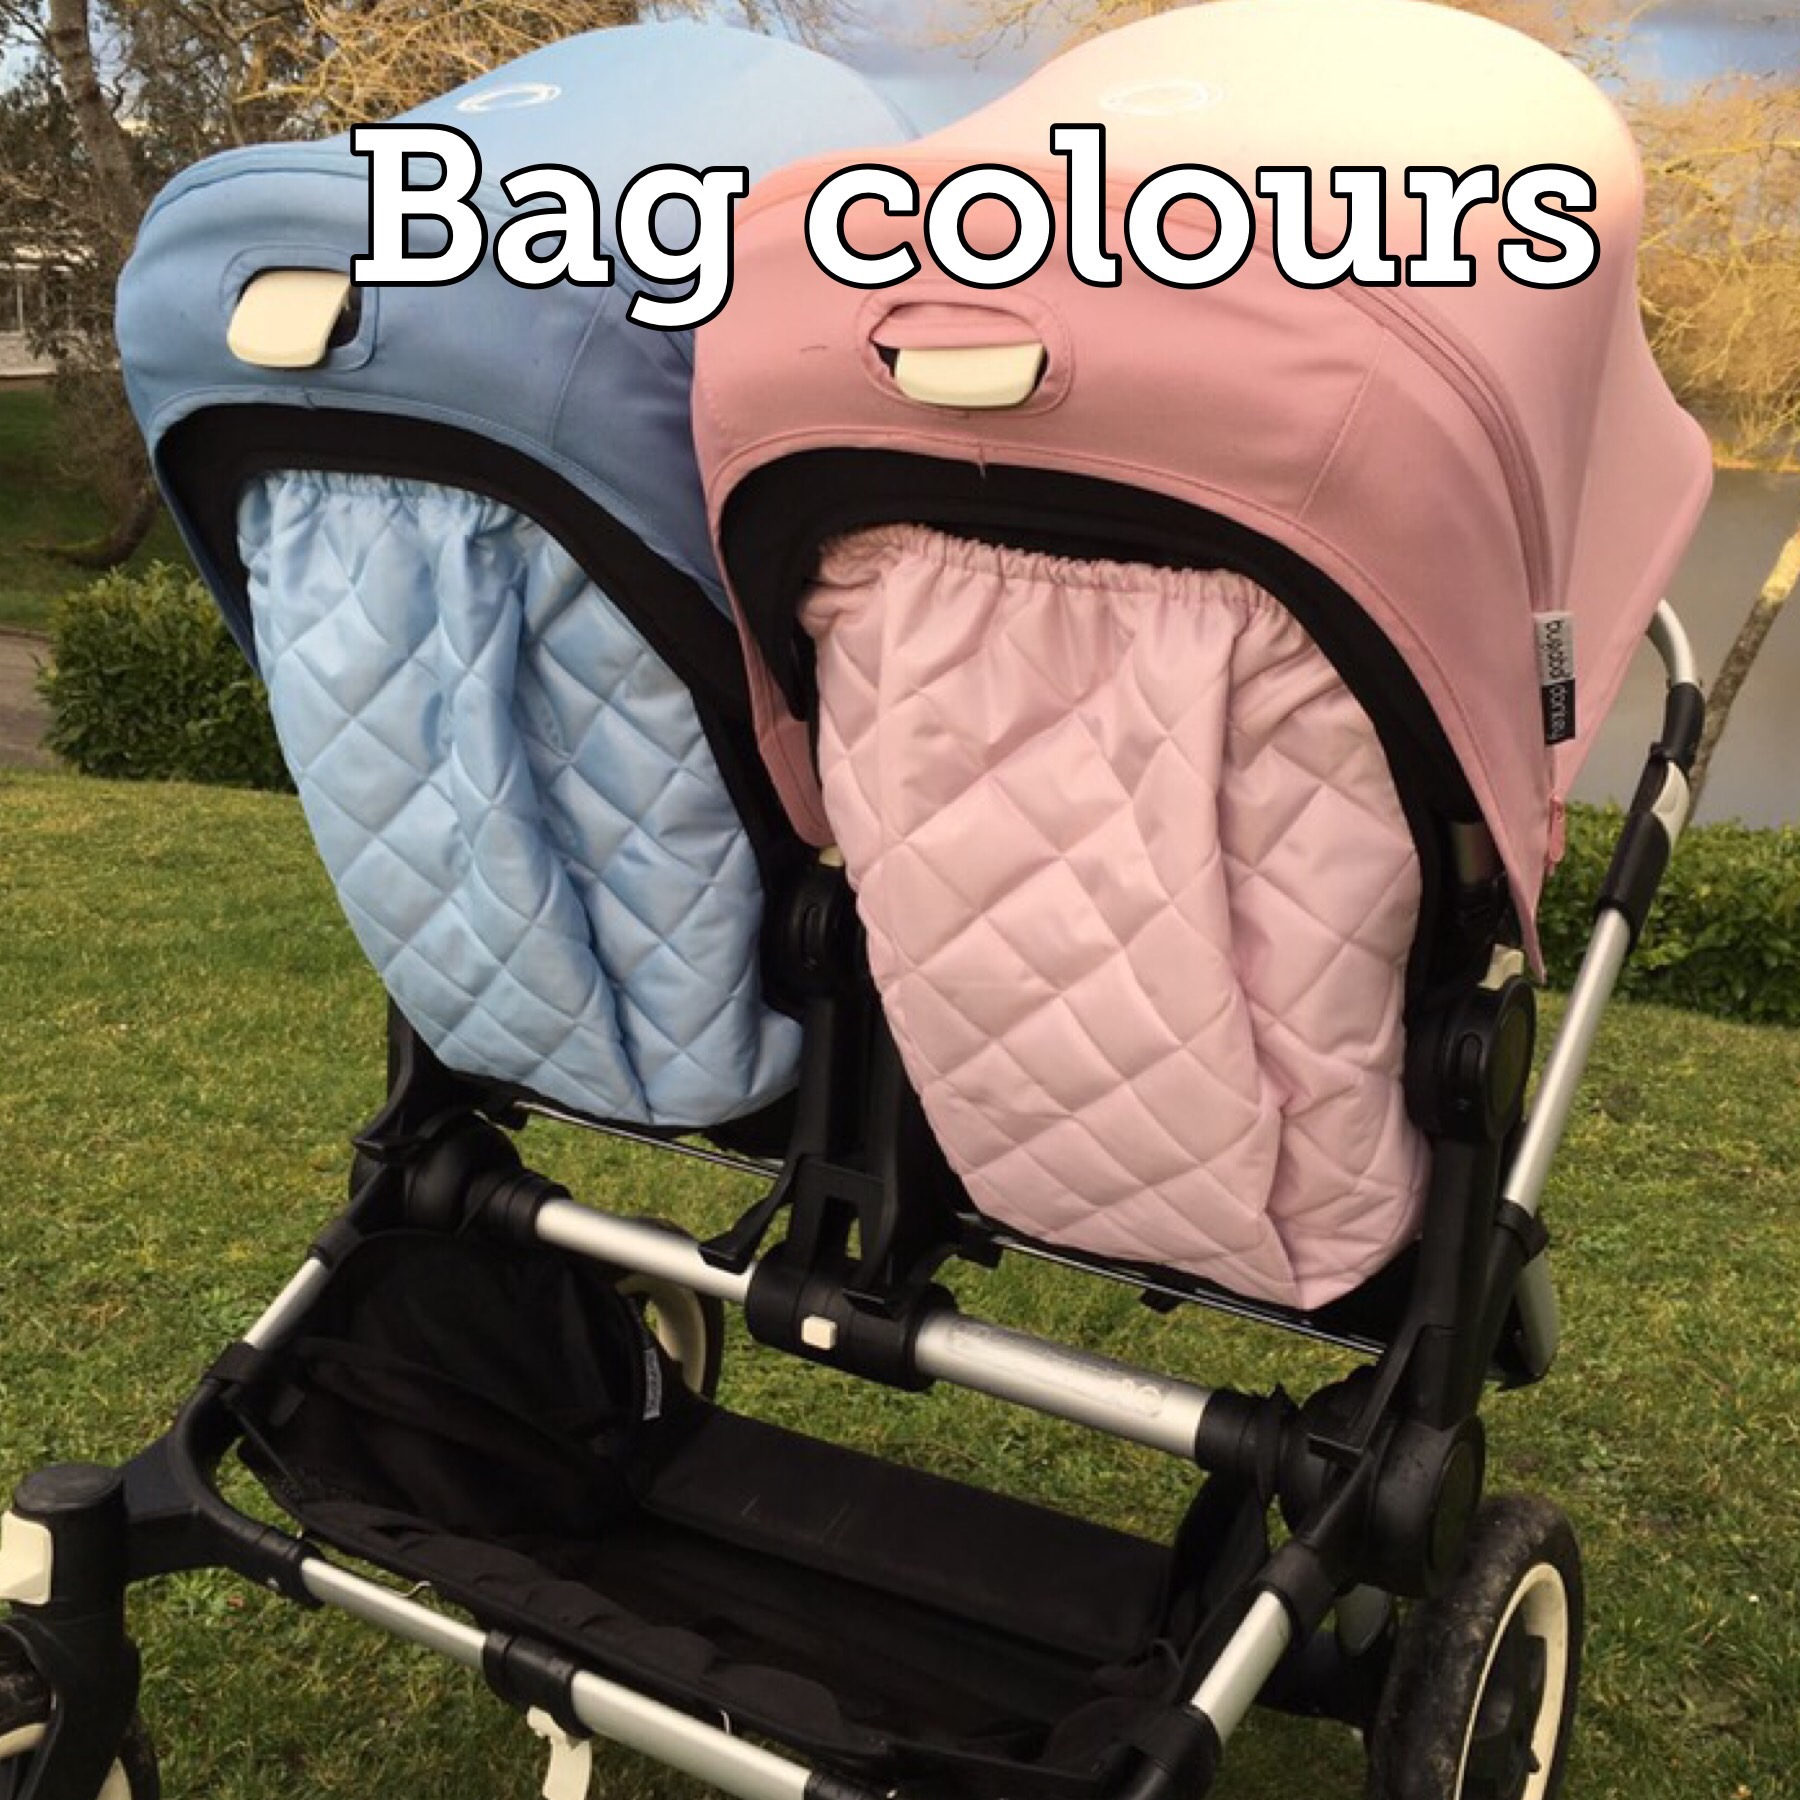 Bag Colours